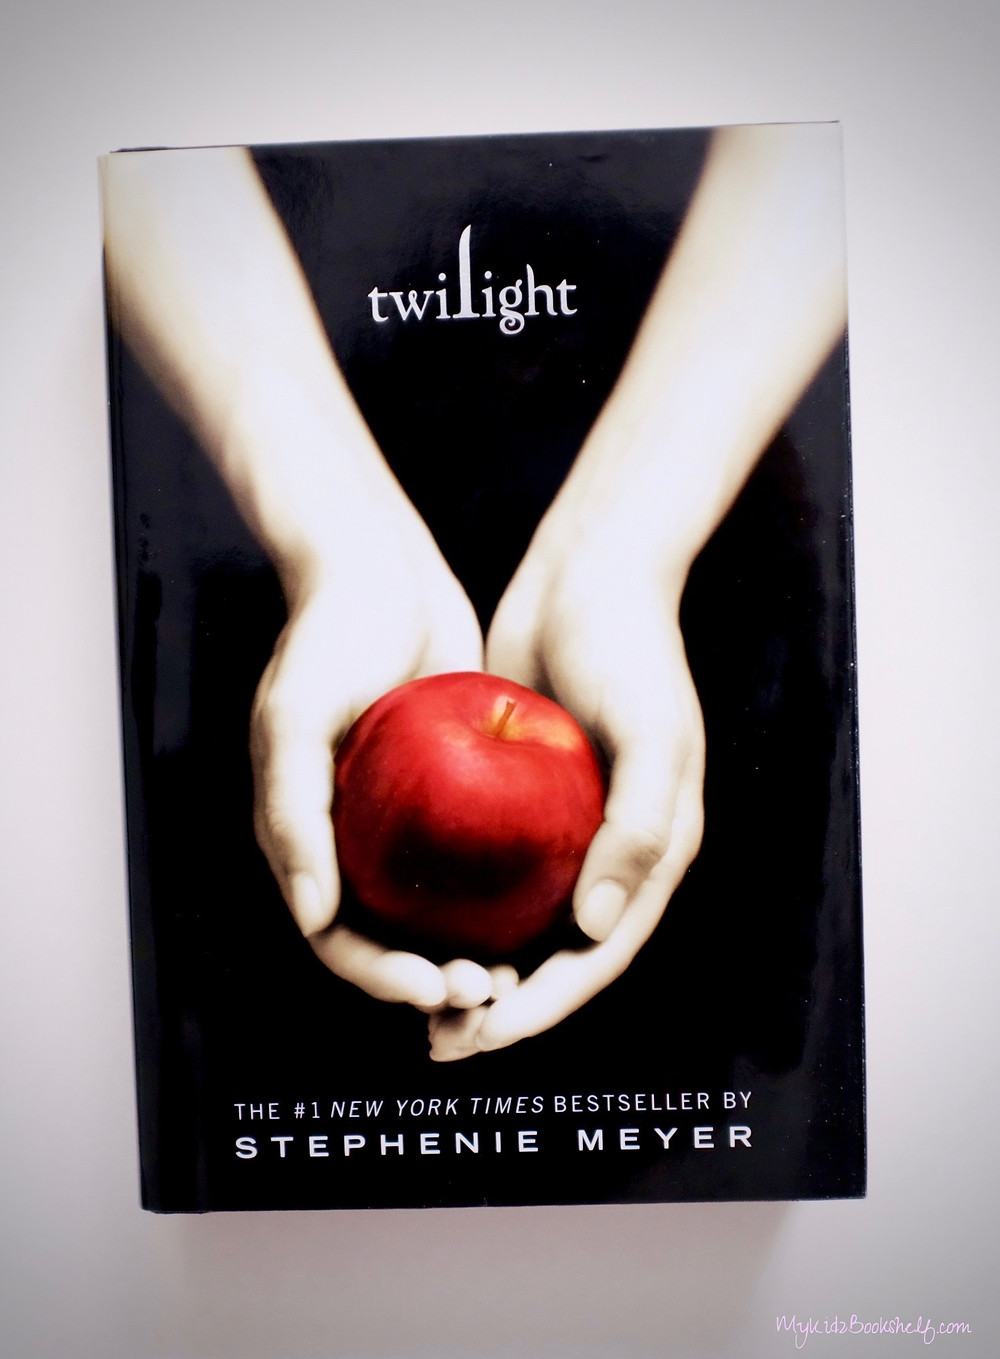 Twilight book cover by Stephanie Meyer hands holding apple